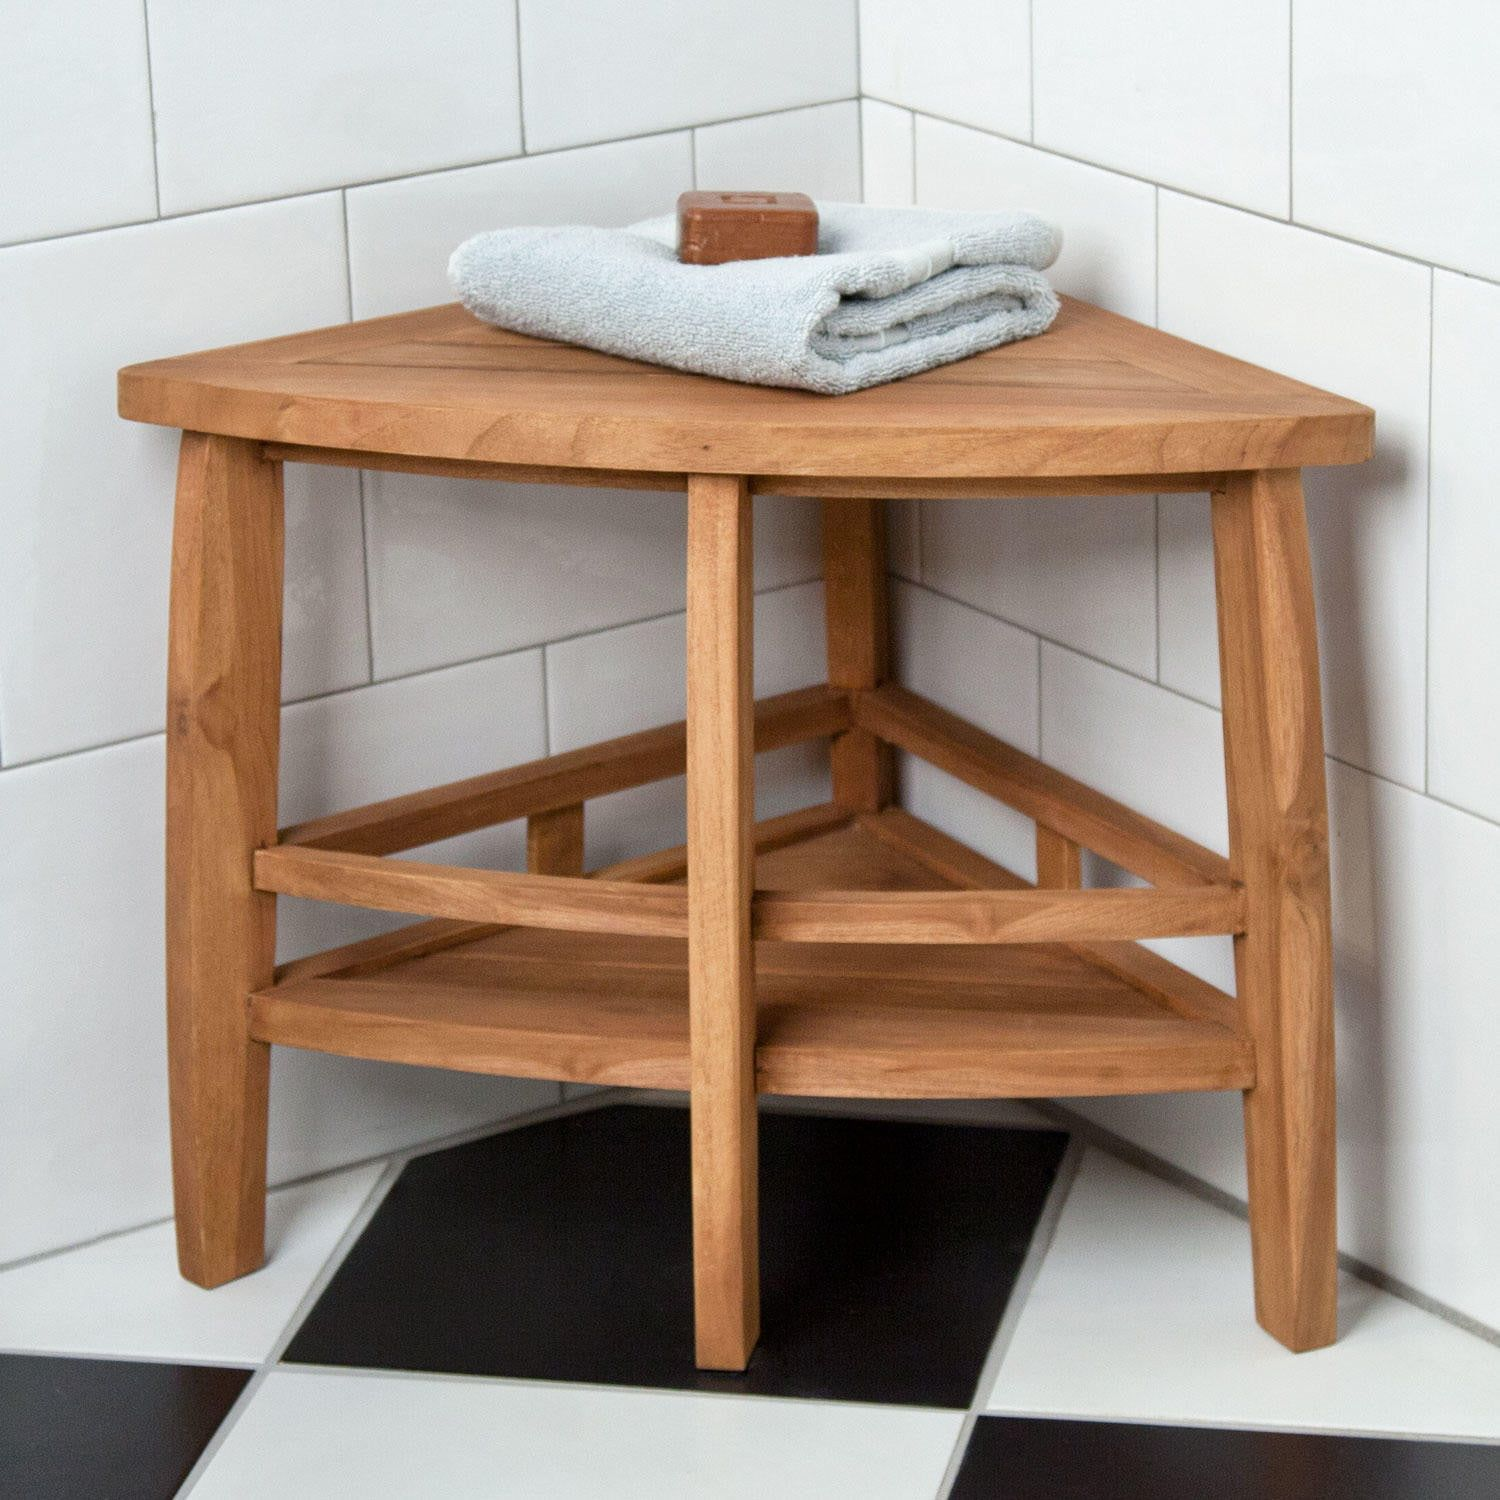 Teak Corner Shower Seat With Shelf Shower Seats Bathroom